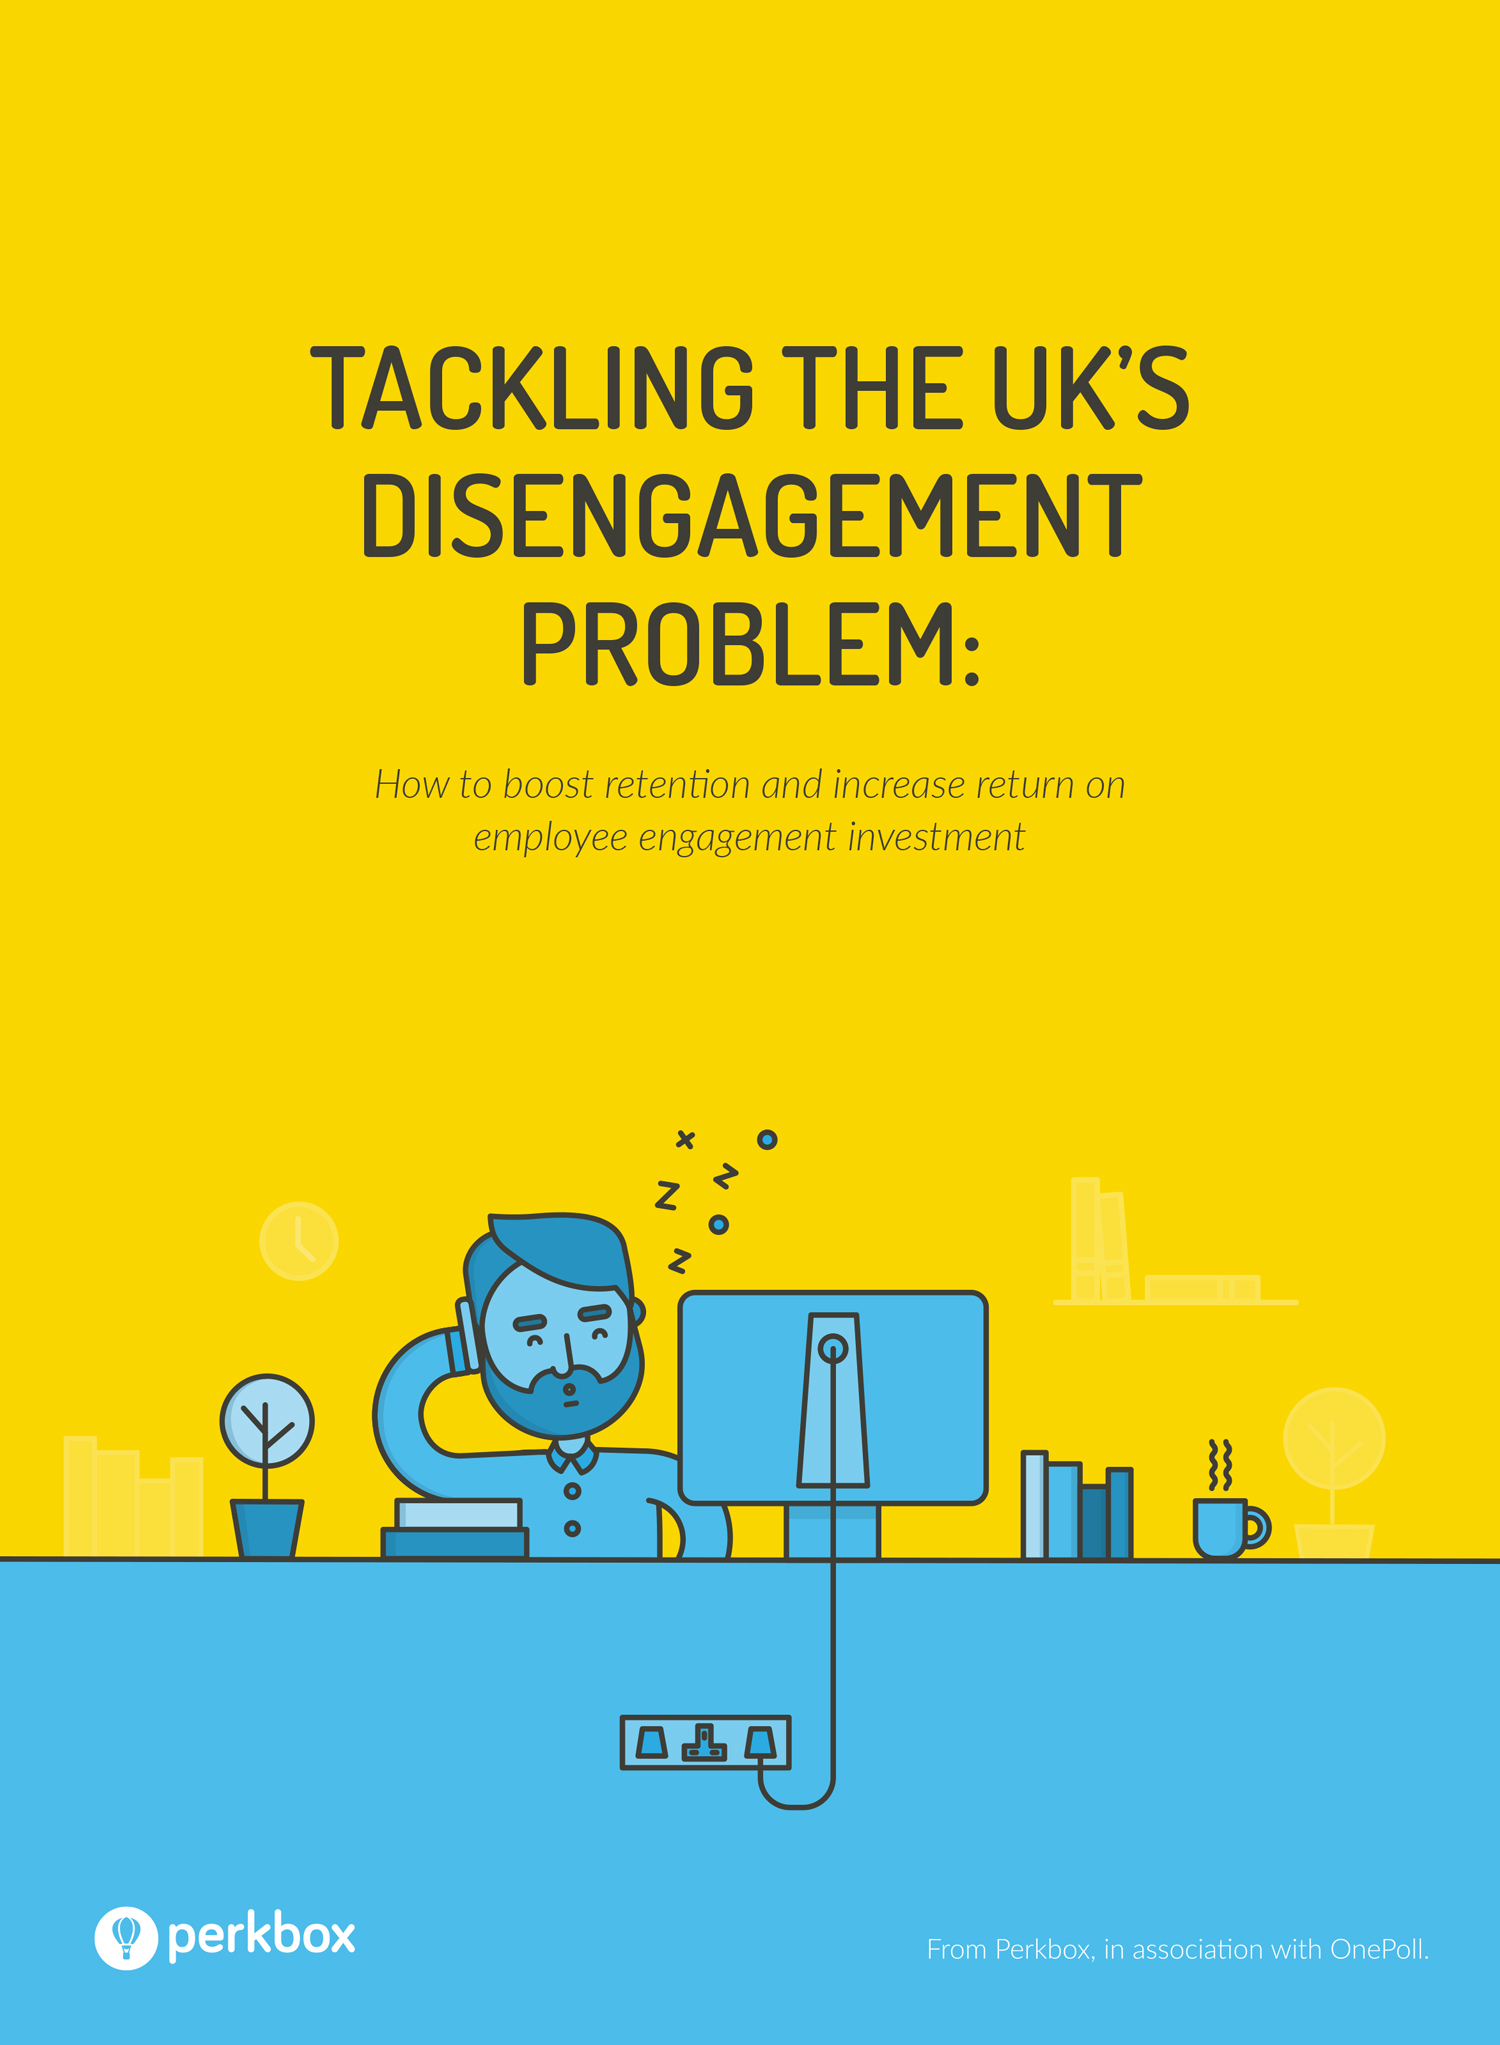 Tackling the UK's Disengagement Problem